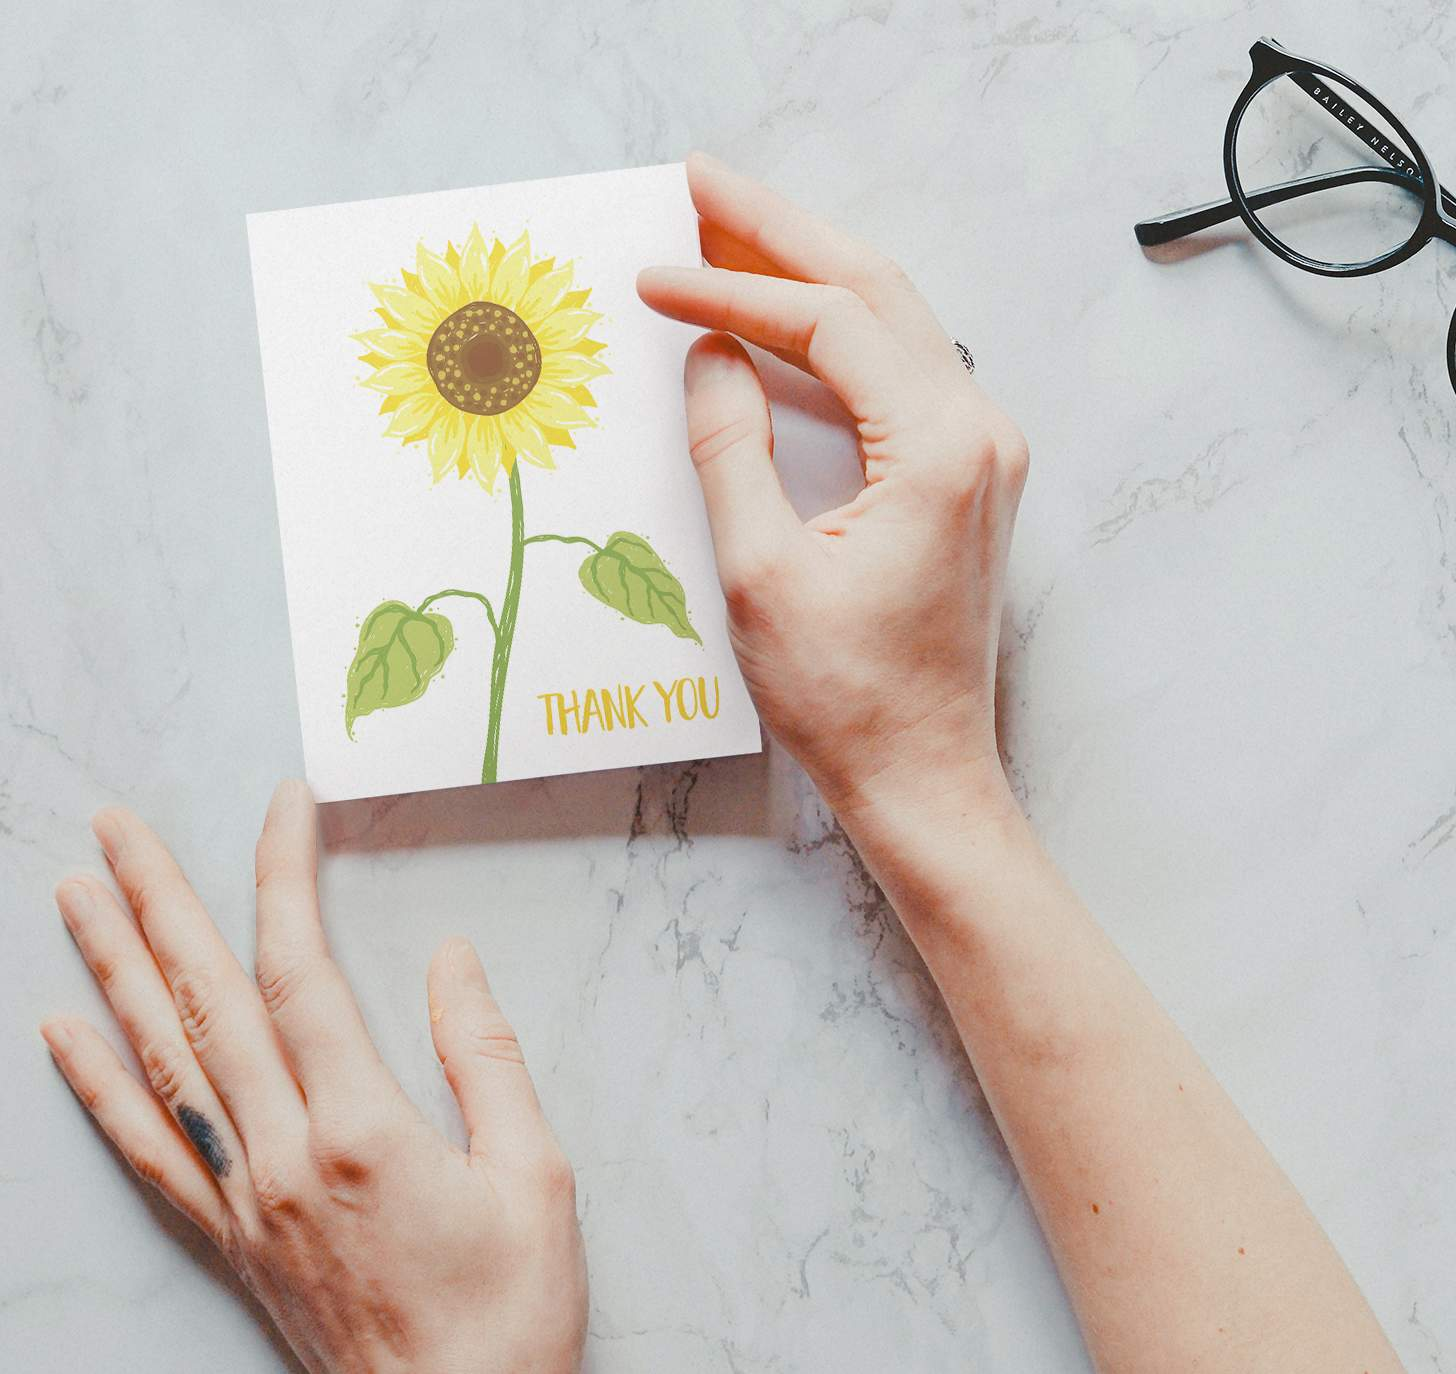 Hands holding yellow sunflower design with marble background